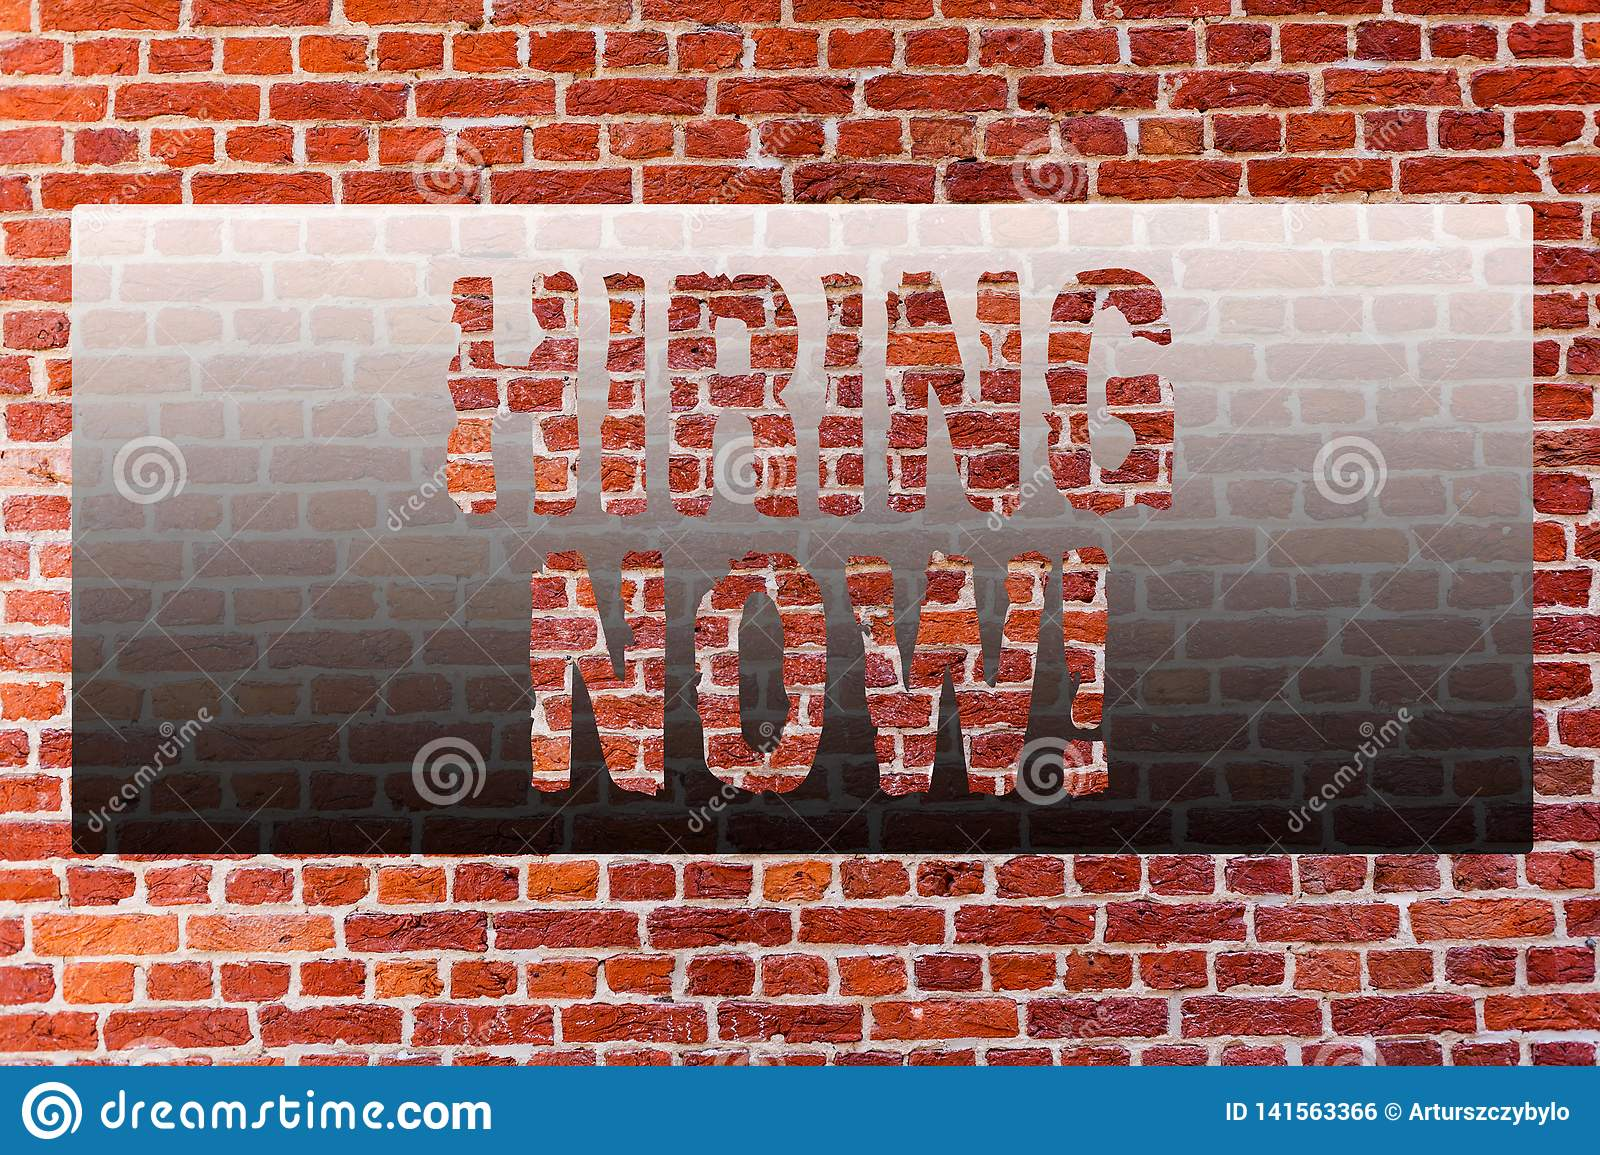 Word writing text Hiring Now. Business concept for Workforce Wanted Employees Recruitment Brick Wall art like Graffiti